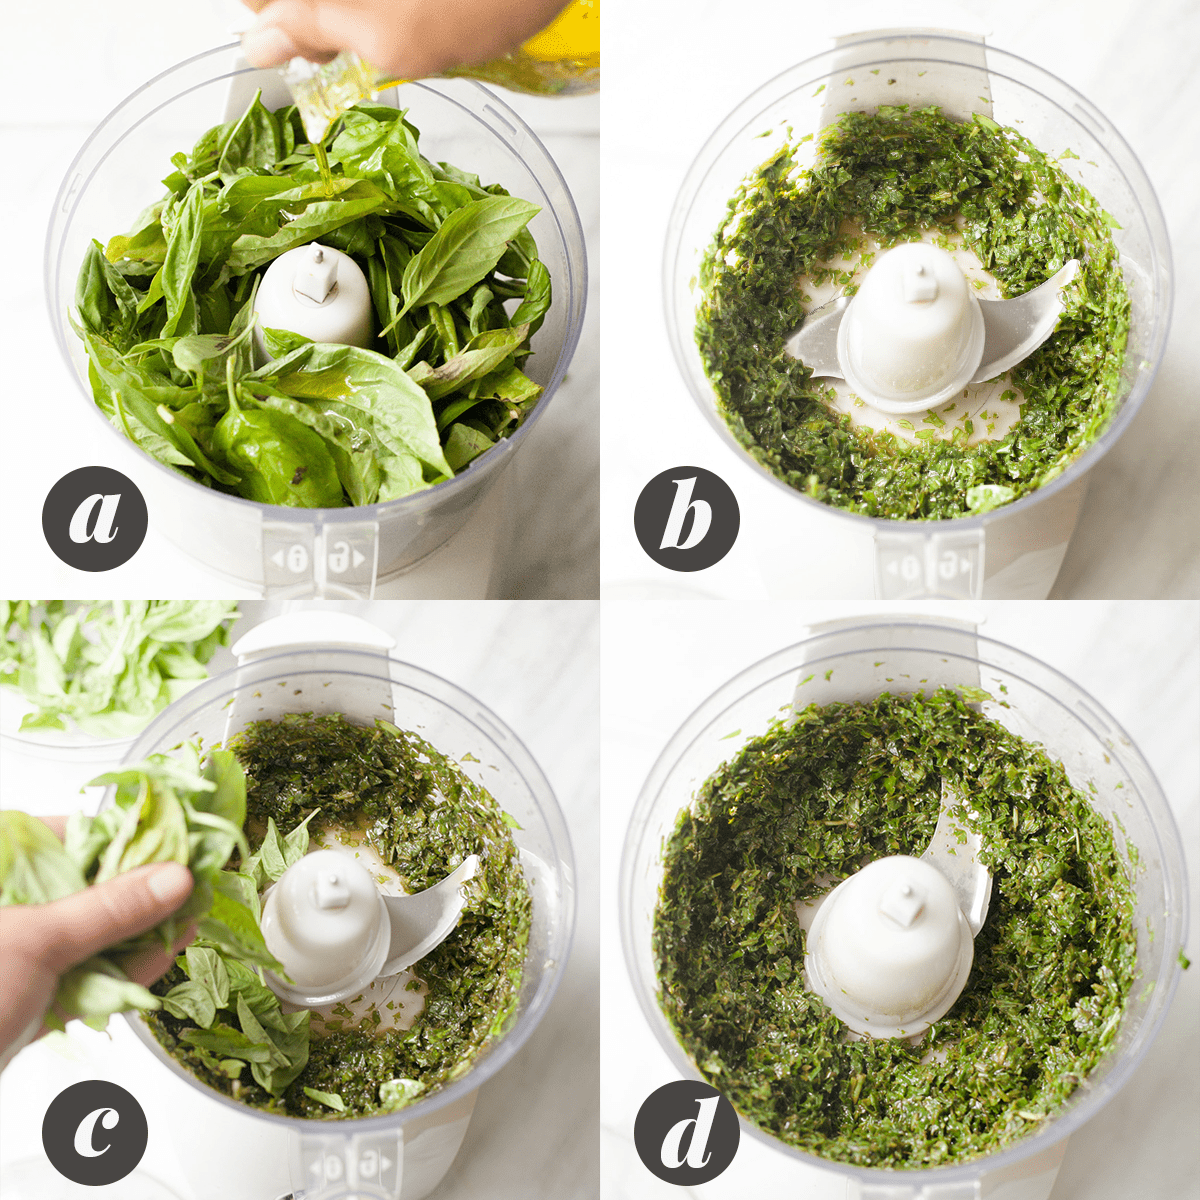 A four panel image showing the process of blending fresh basil with olive oil, as part of directions on how to freeze basil.